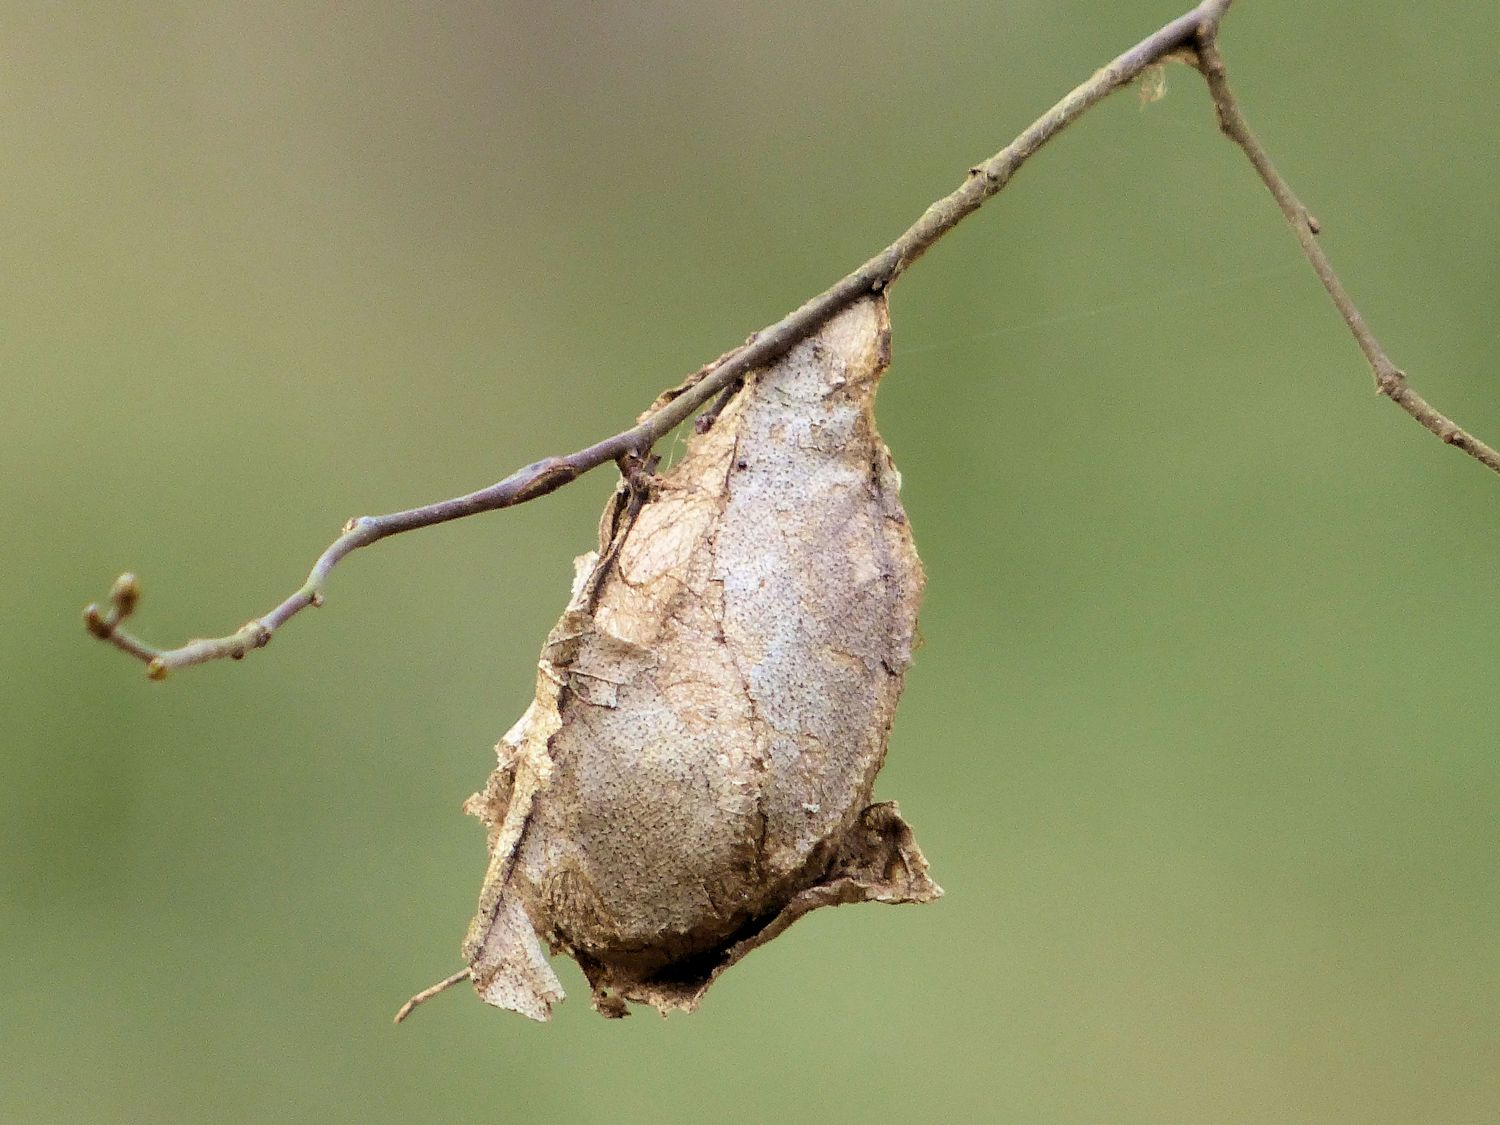 MOAR Lovely Dried Crap ... or maybe it is a chrysalis? With something exciting inside?